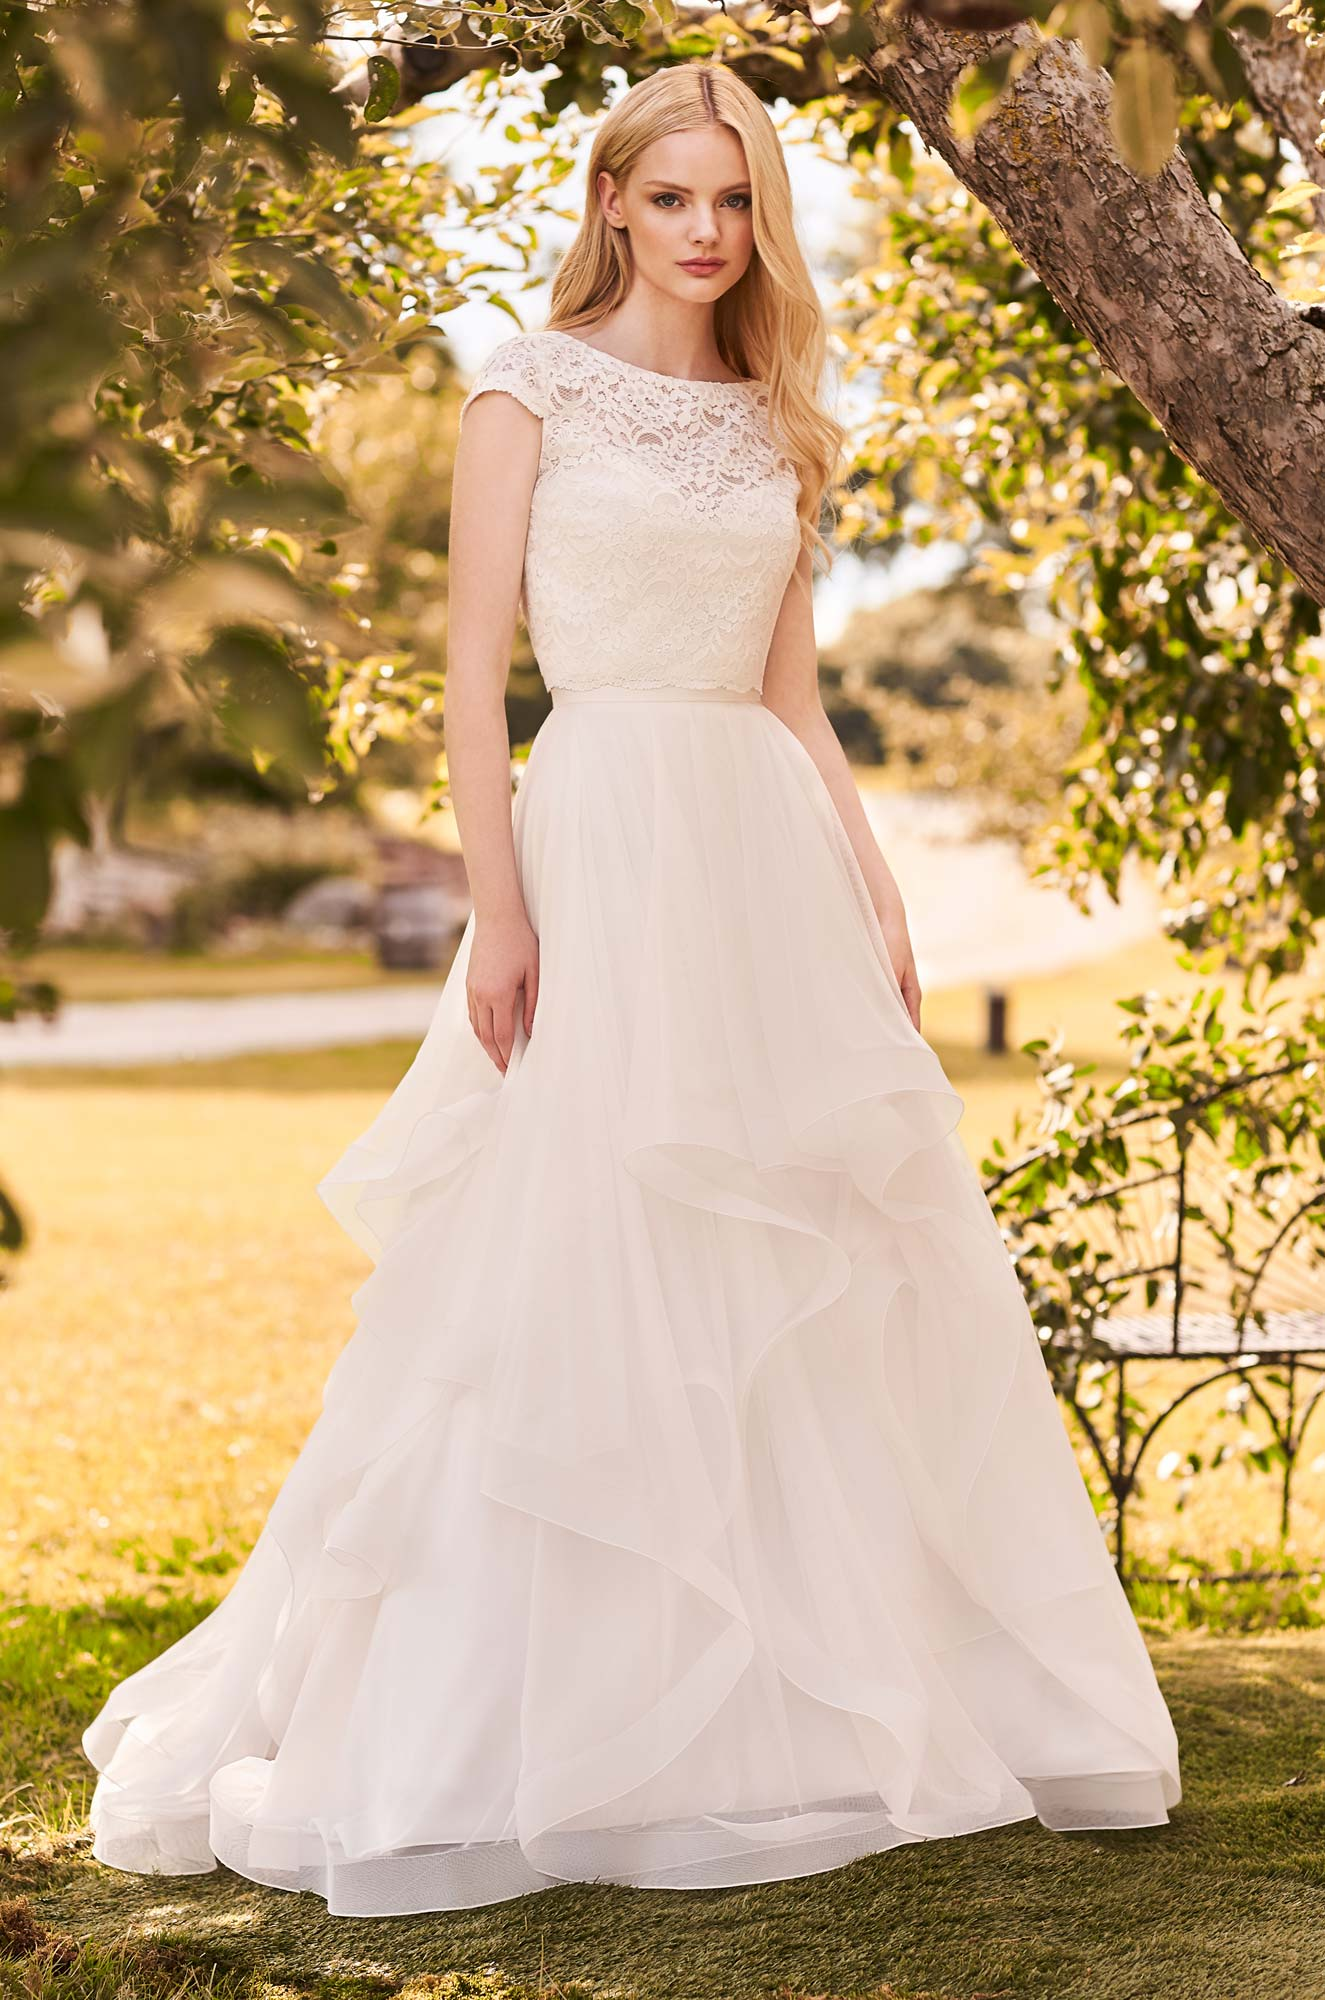 Chic Two Piece Wedding Dress - Style #2293 | Mikaella Bridal